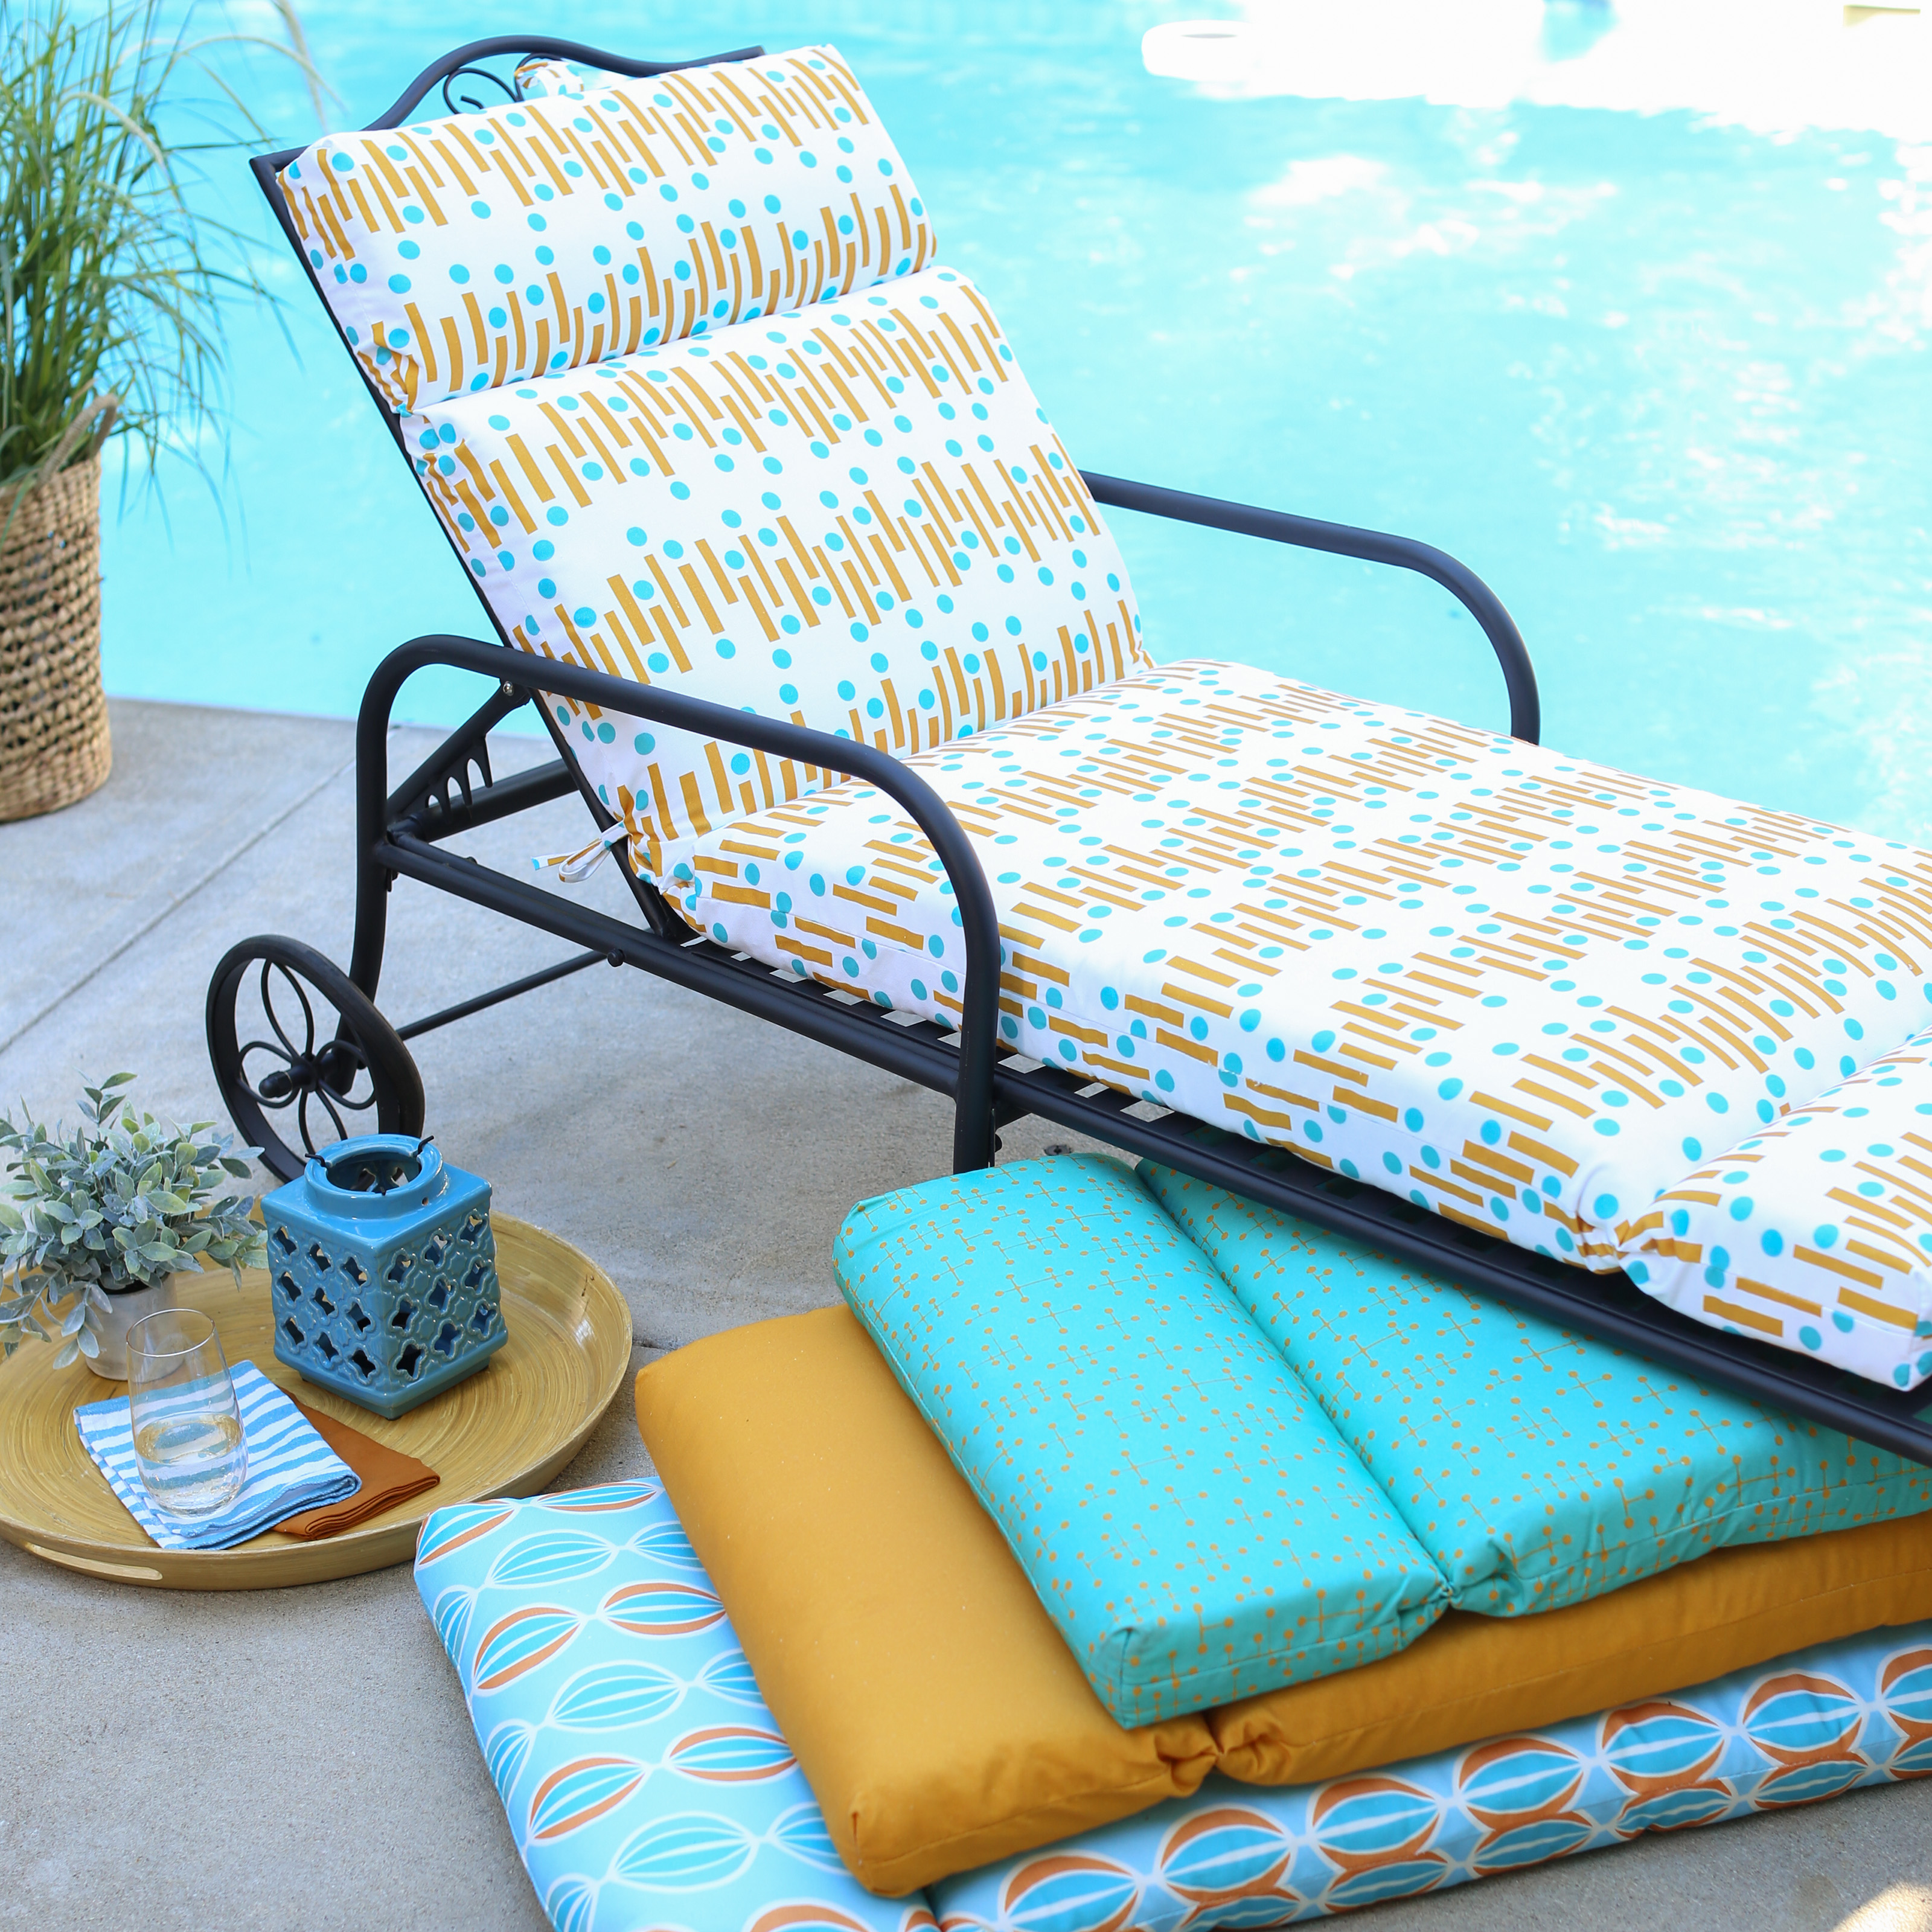 pdx cushion home wayfair peyton darby lounge adjustable outdoor chaise with wicker mattress co